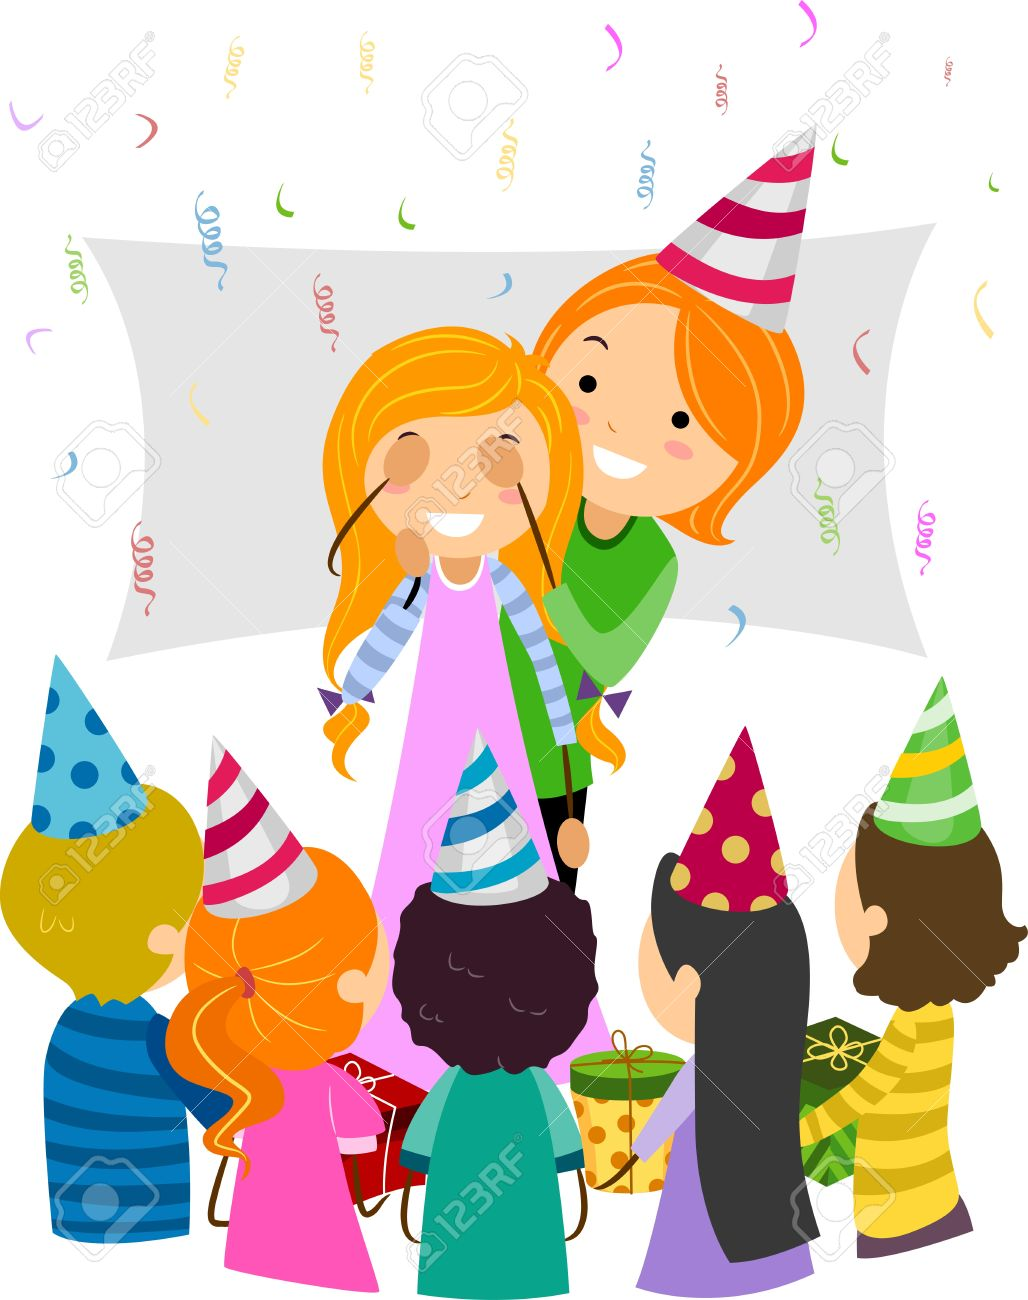 Clipart surprise birthday party vector royalty free library Surprise birthday party clipart - Clip Art Library vector royalty free library